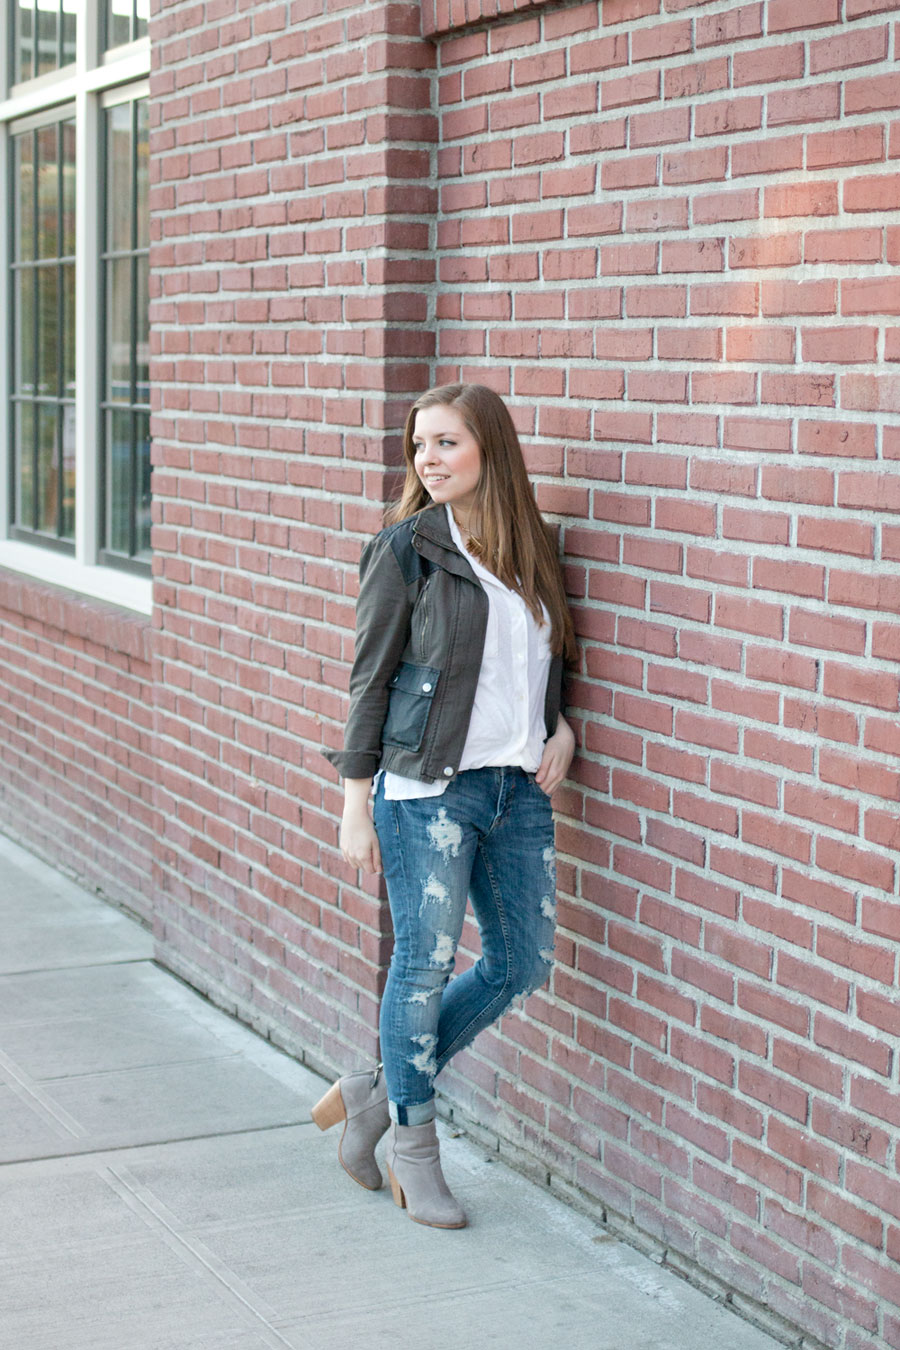 How to Wear Distressed Jeans: Military Jacket, White Collared Shirt, Distressed Skinny Jeans, & Gray Booties Outfit / hellorigby seattle fashion blog